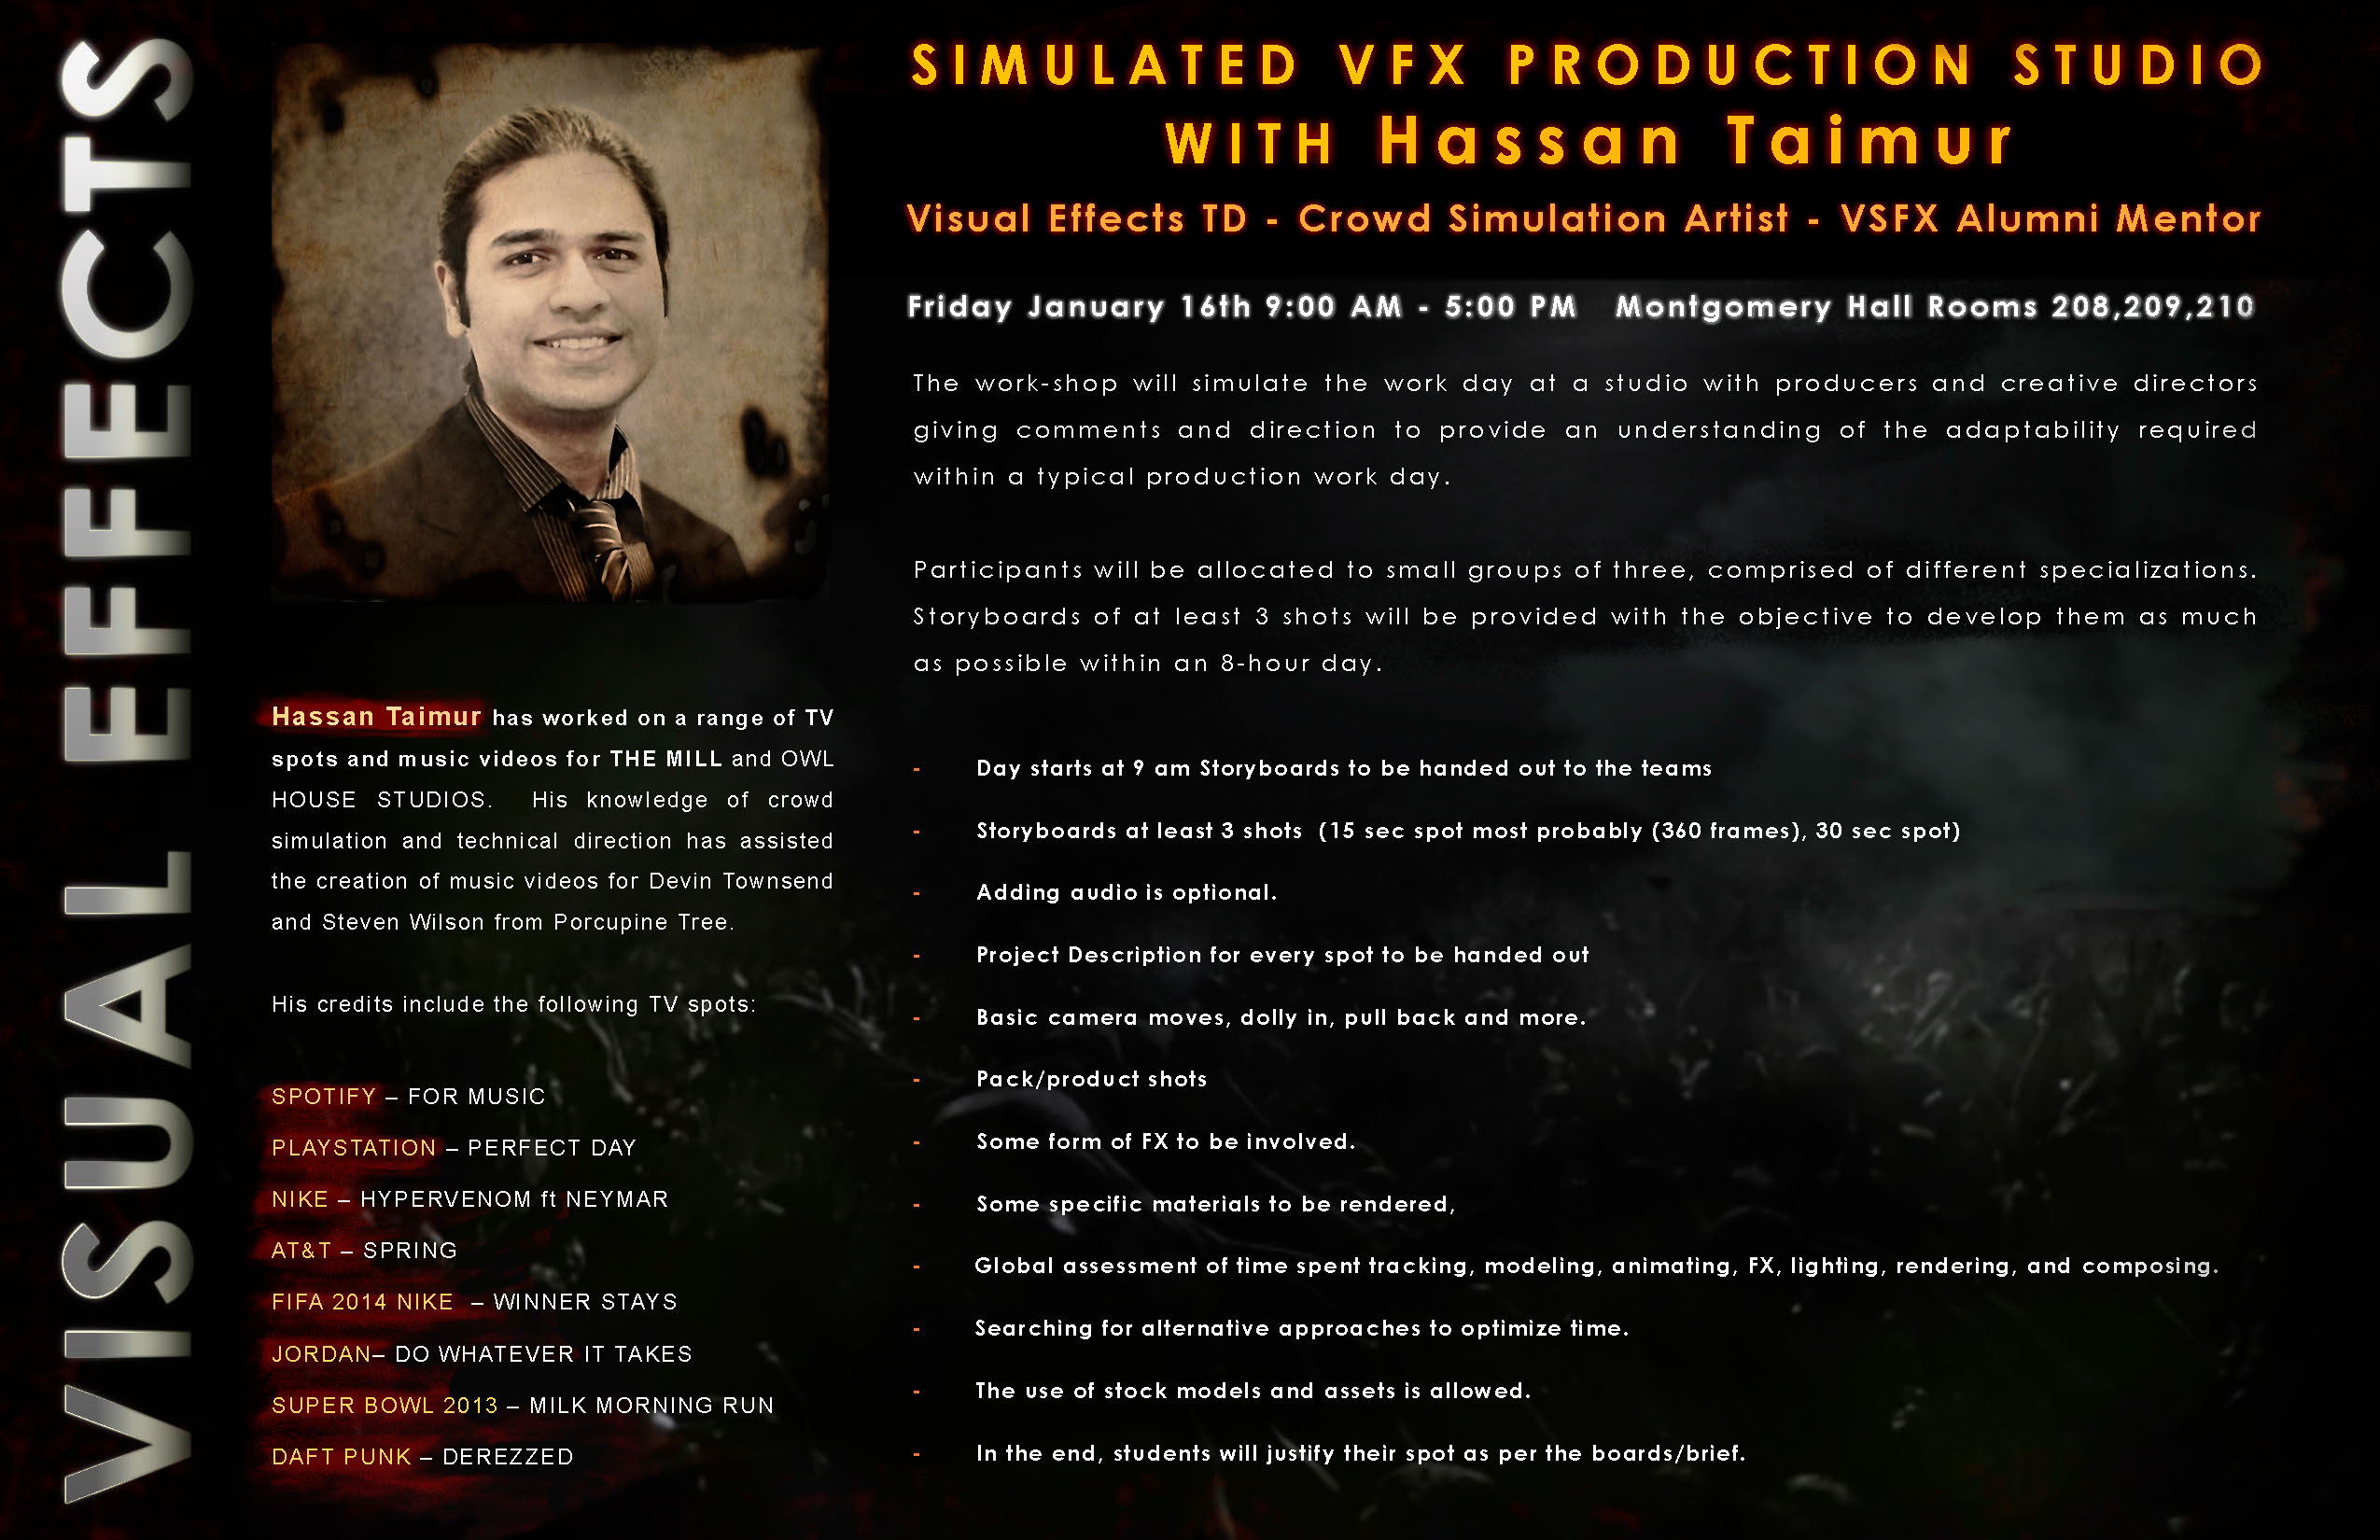 Simulated VFX Production Studio with Hassan Taimur